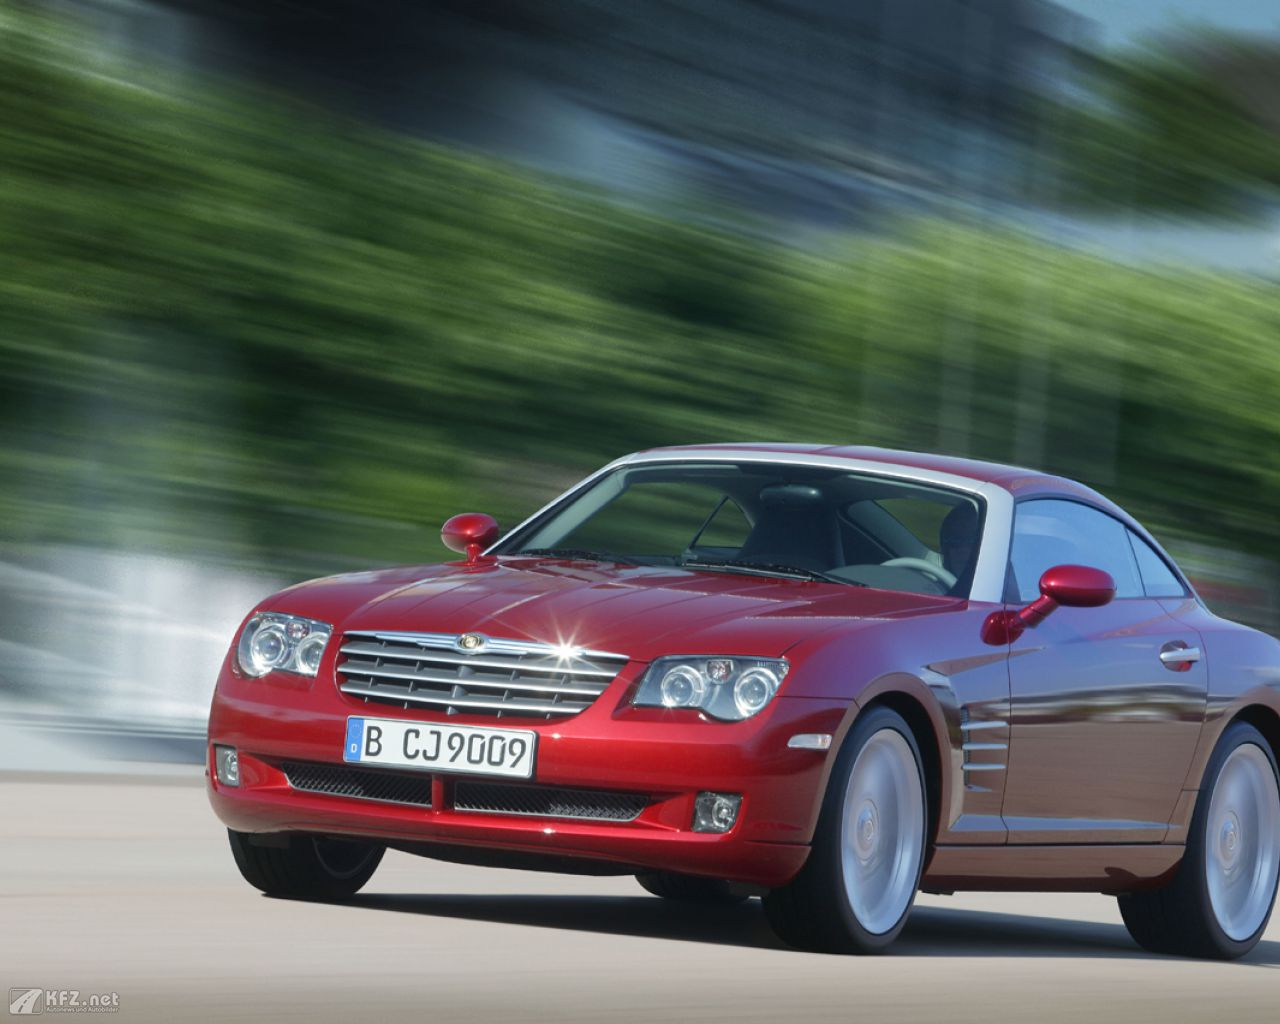 chrysler-crossfire-1280x1024-4